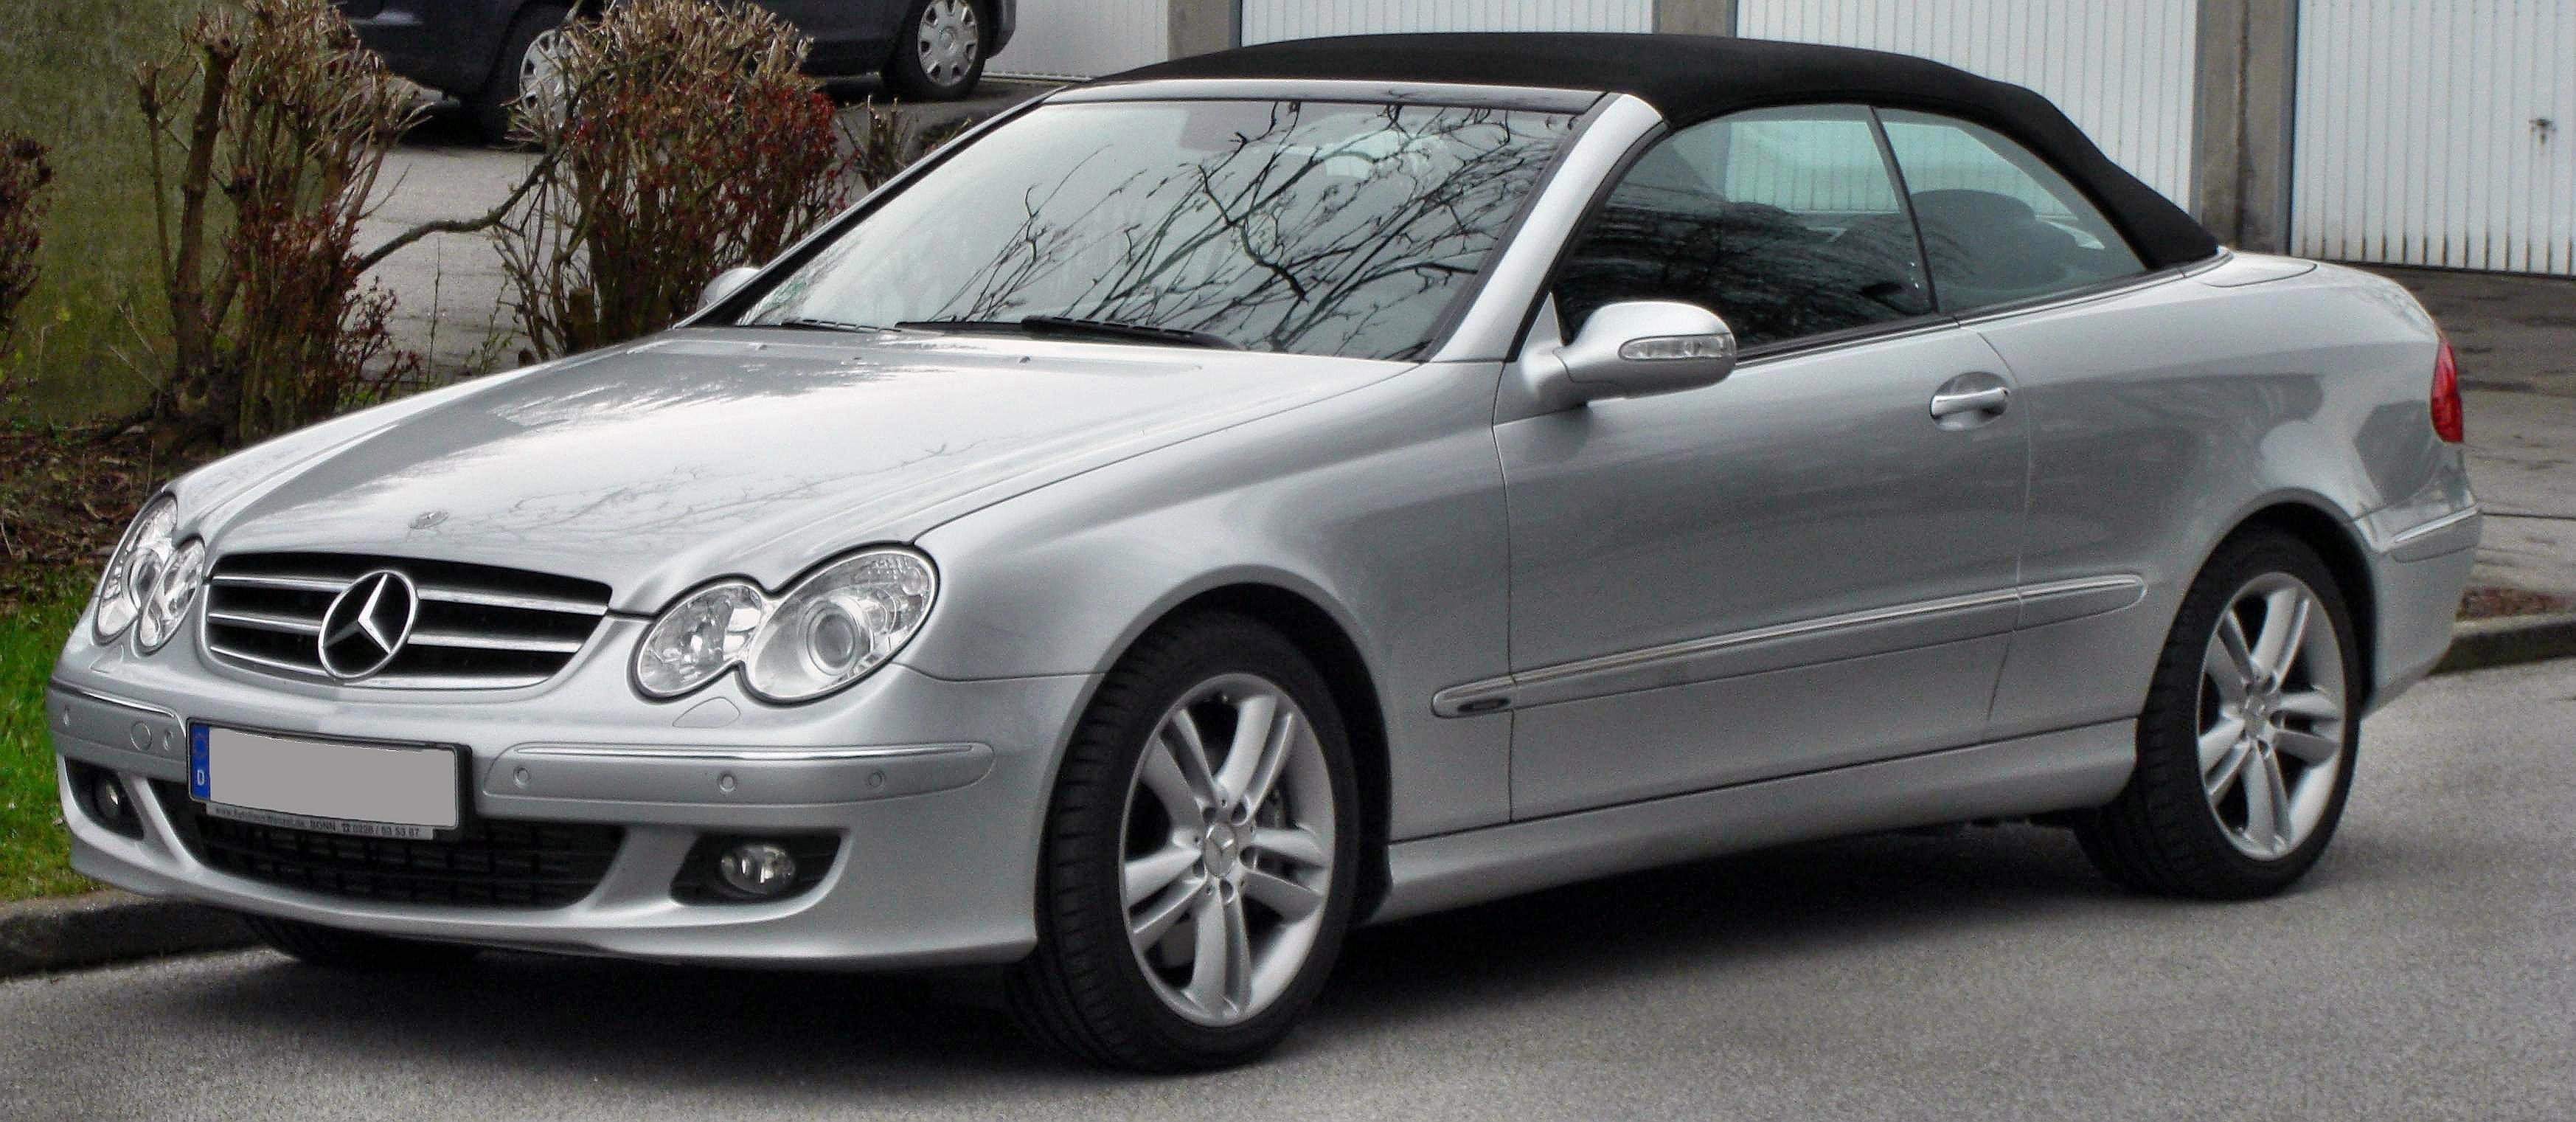 mercedes benz clk 320 cdi technical details history photos on better parts ltd. Black Bedroom Furniture Sets. Home Design Ideas